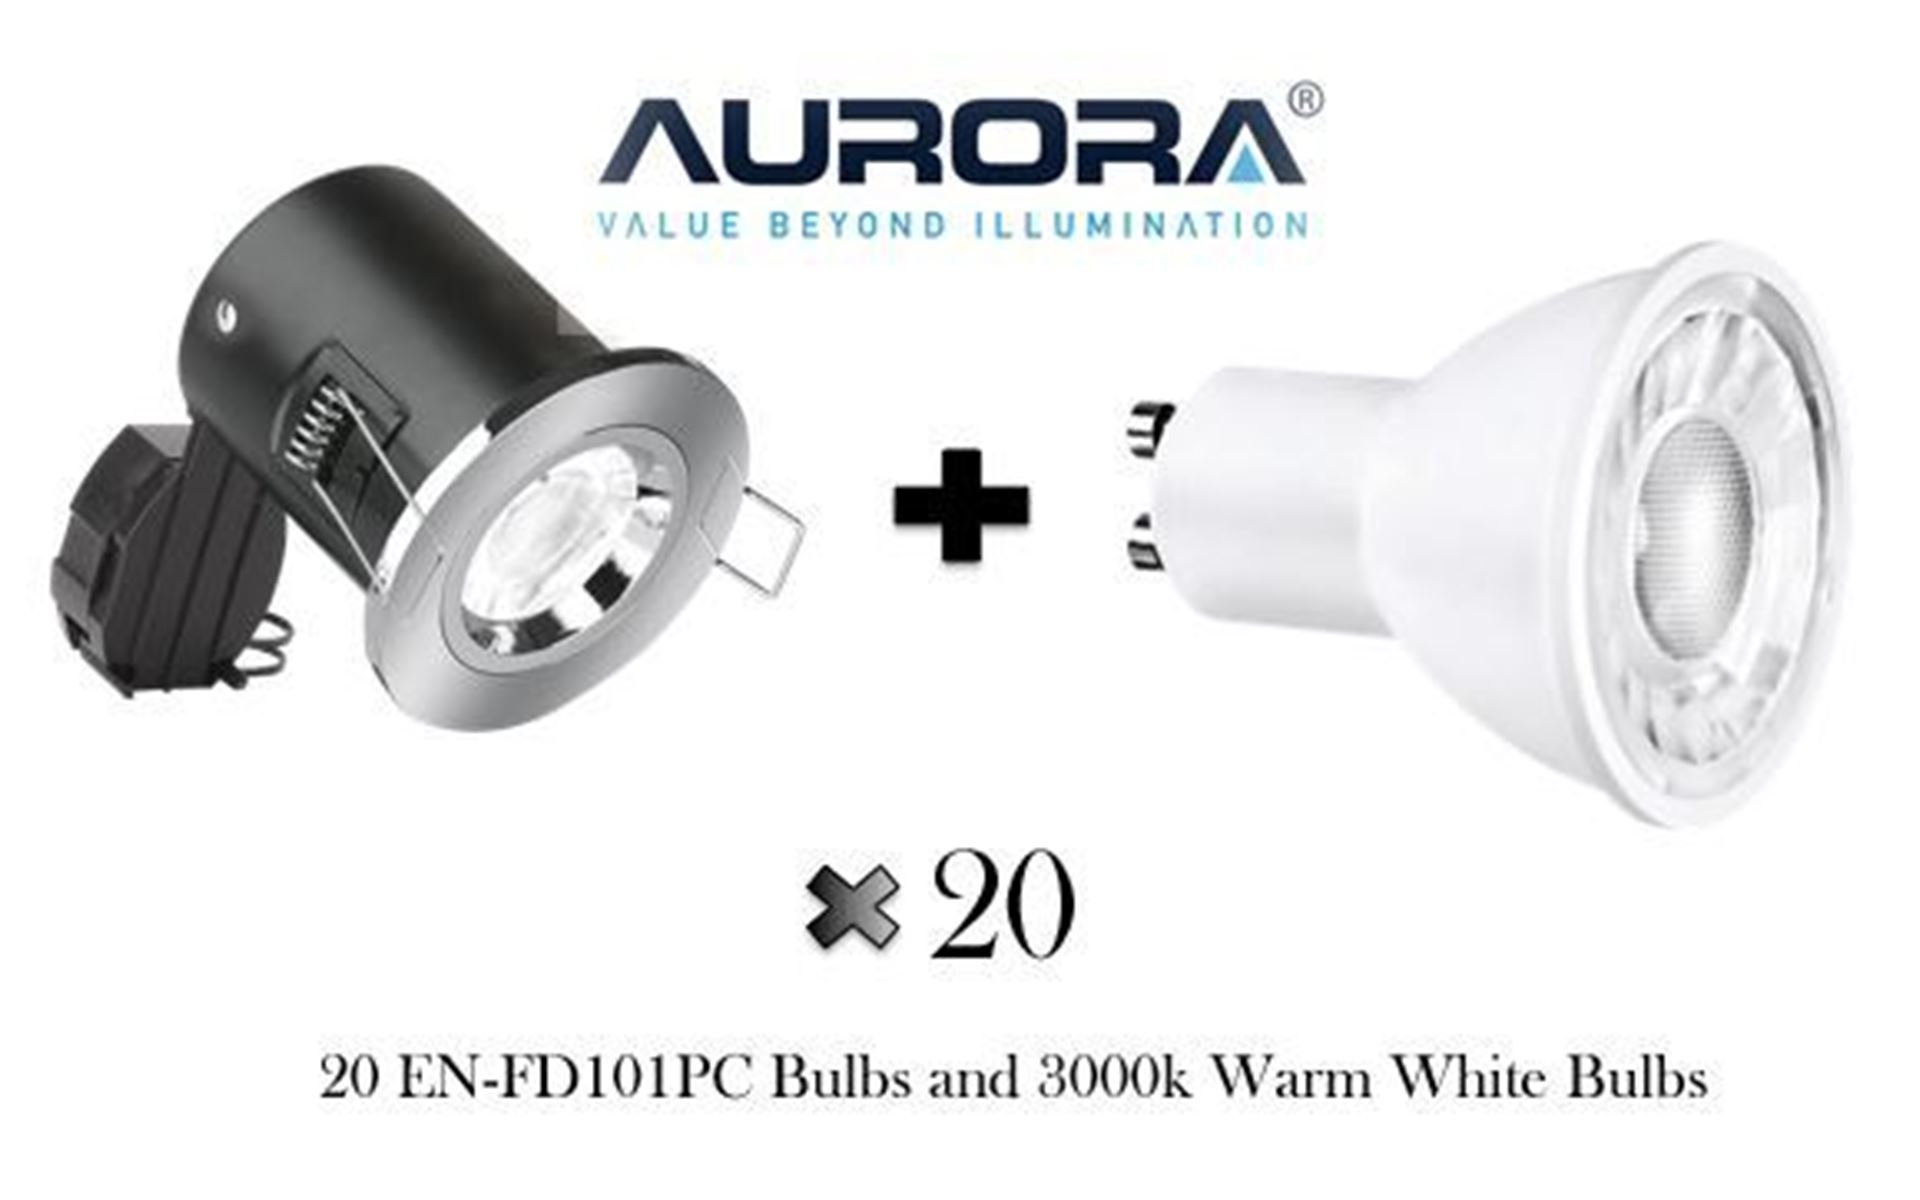 Includes 20- EN-FD101PC Fire Rated Downlights and EN-GU005/30 Bulbs